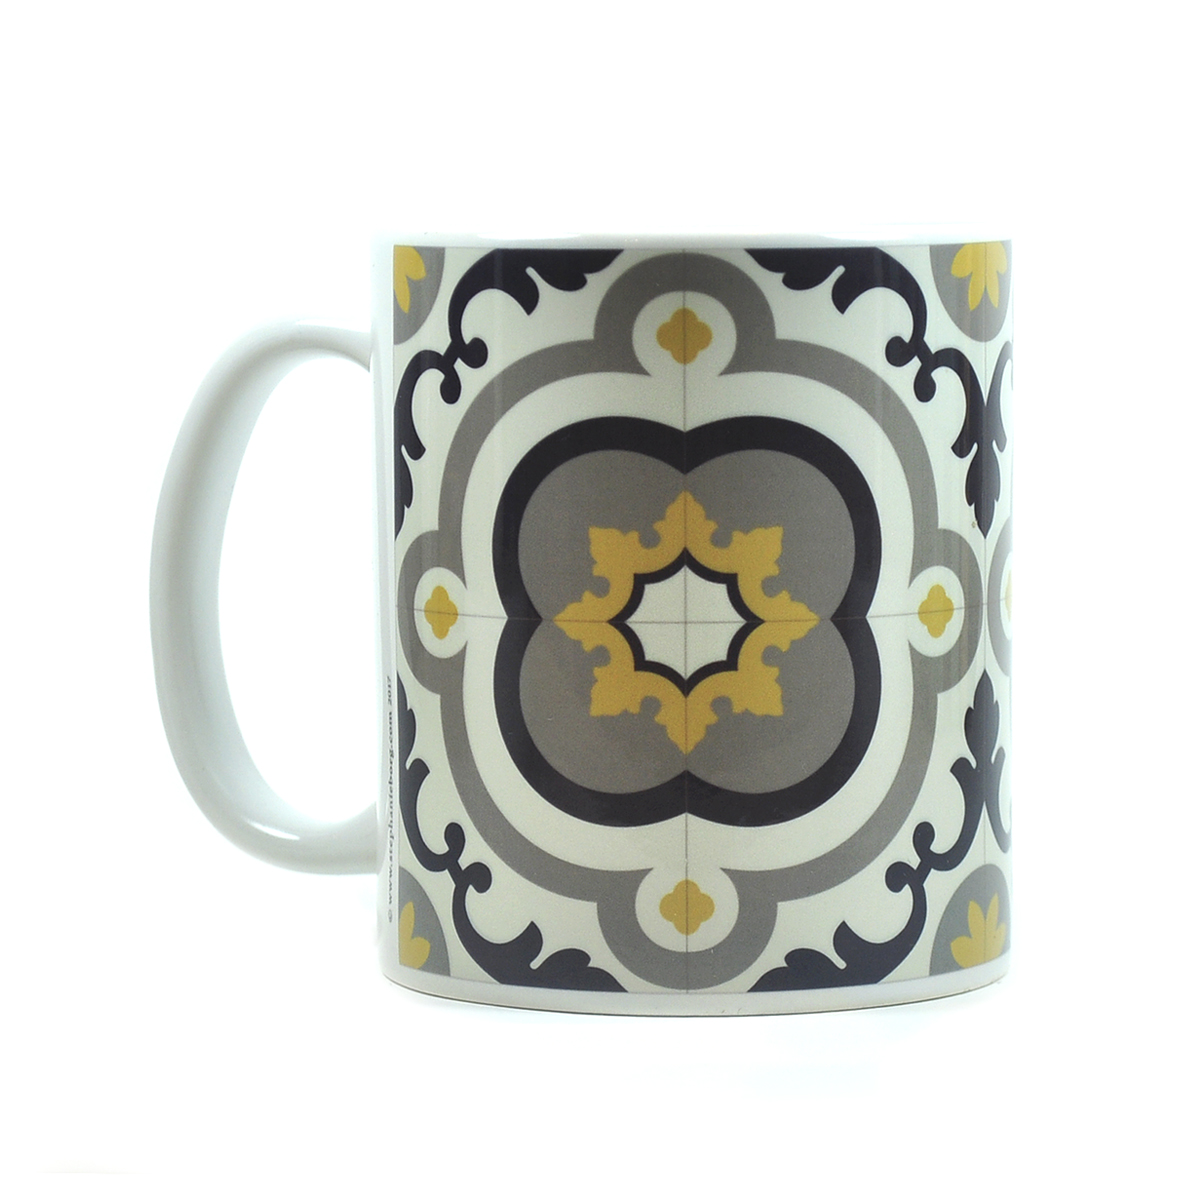 Malta Tile large Pattern Mug no.11